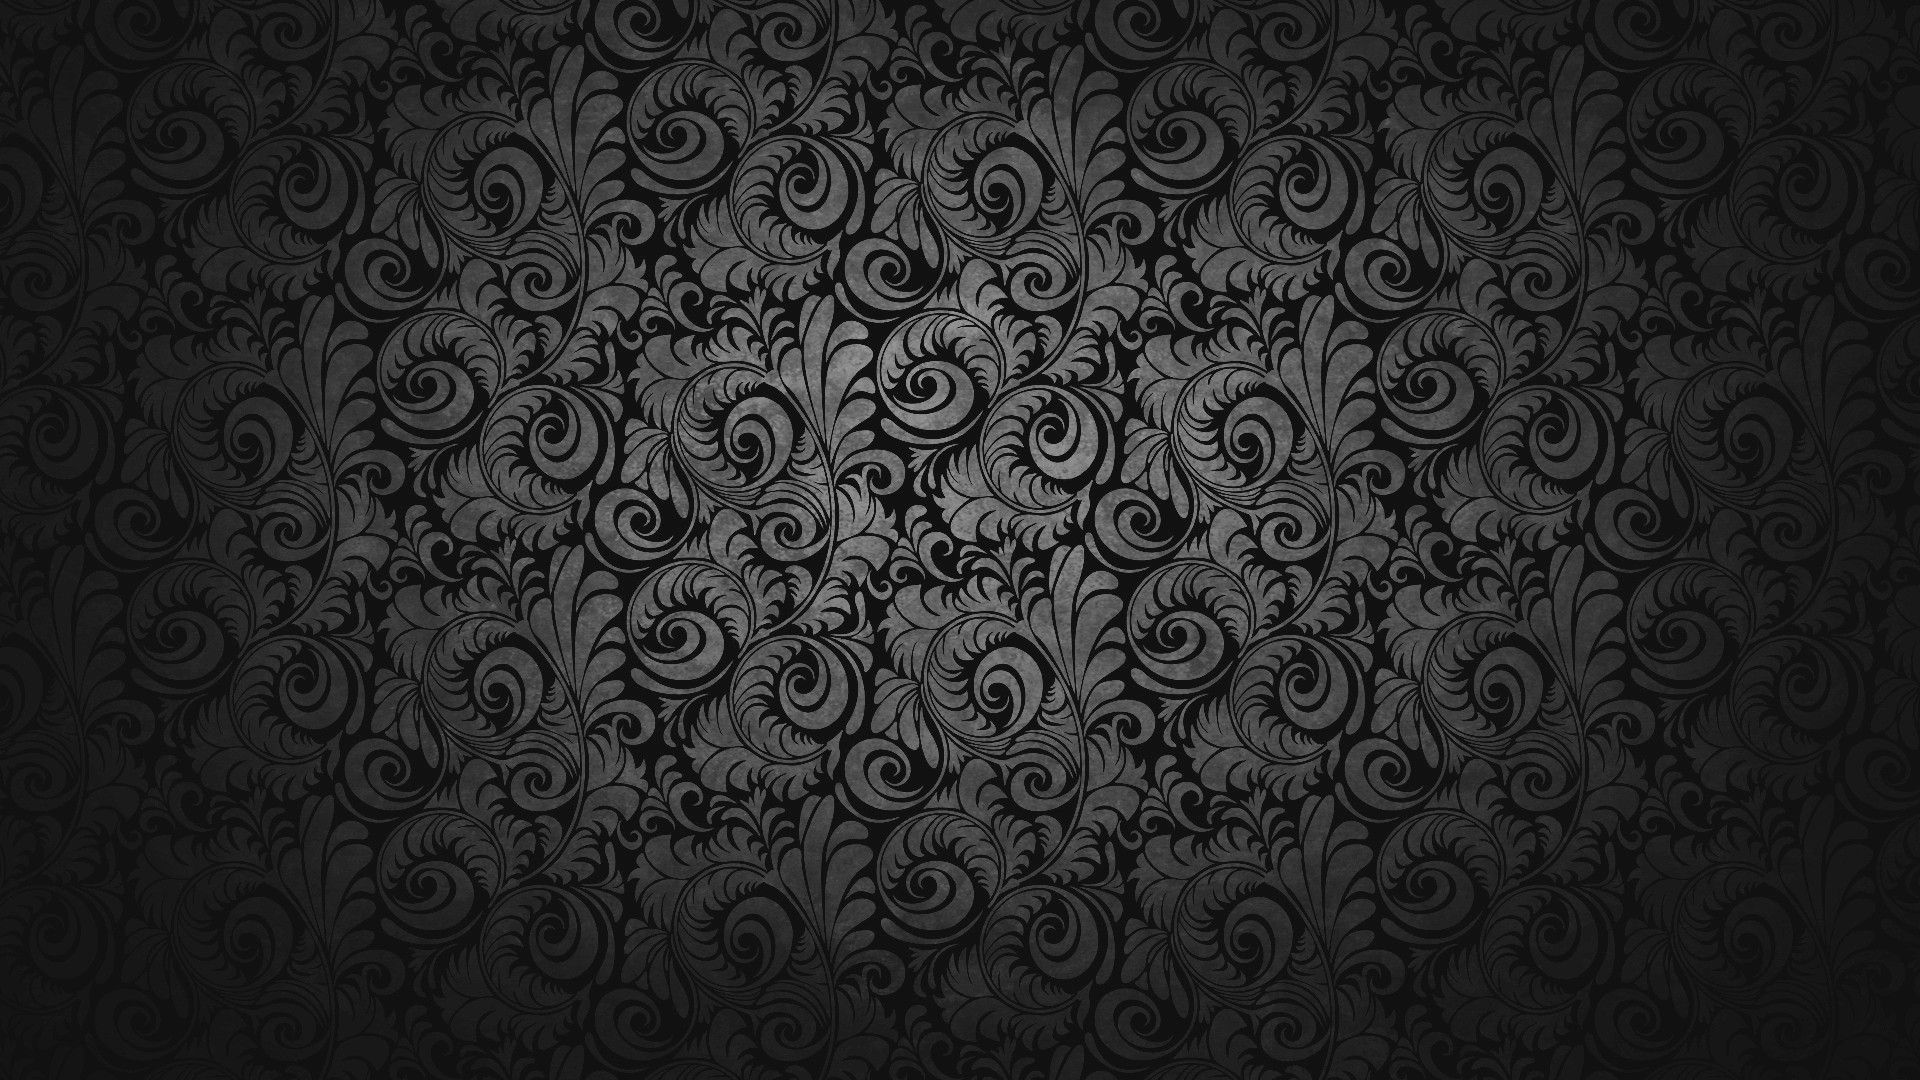 Dark Hd Wallpapers 1080p Black Texture Background Black Background Wallpaper Black And Grey Wallpaper